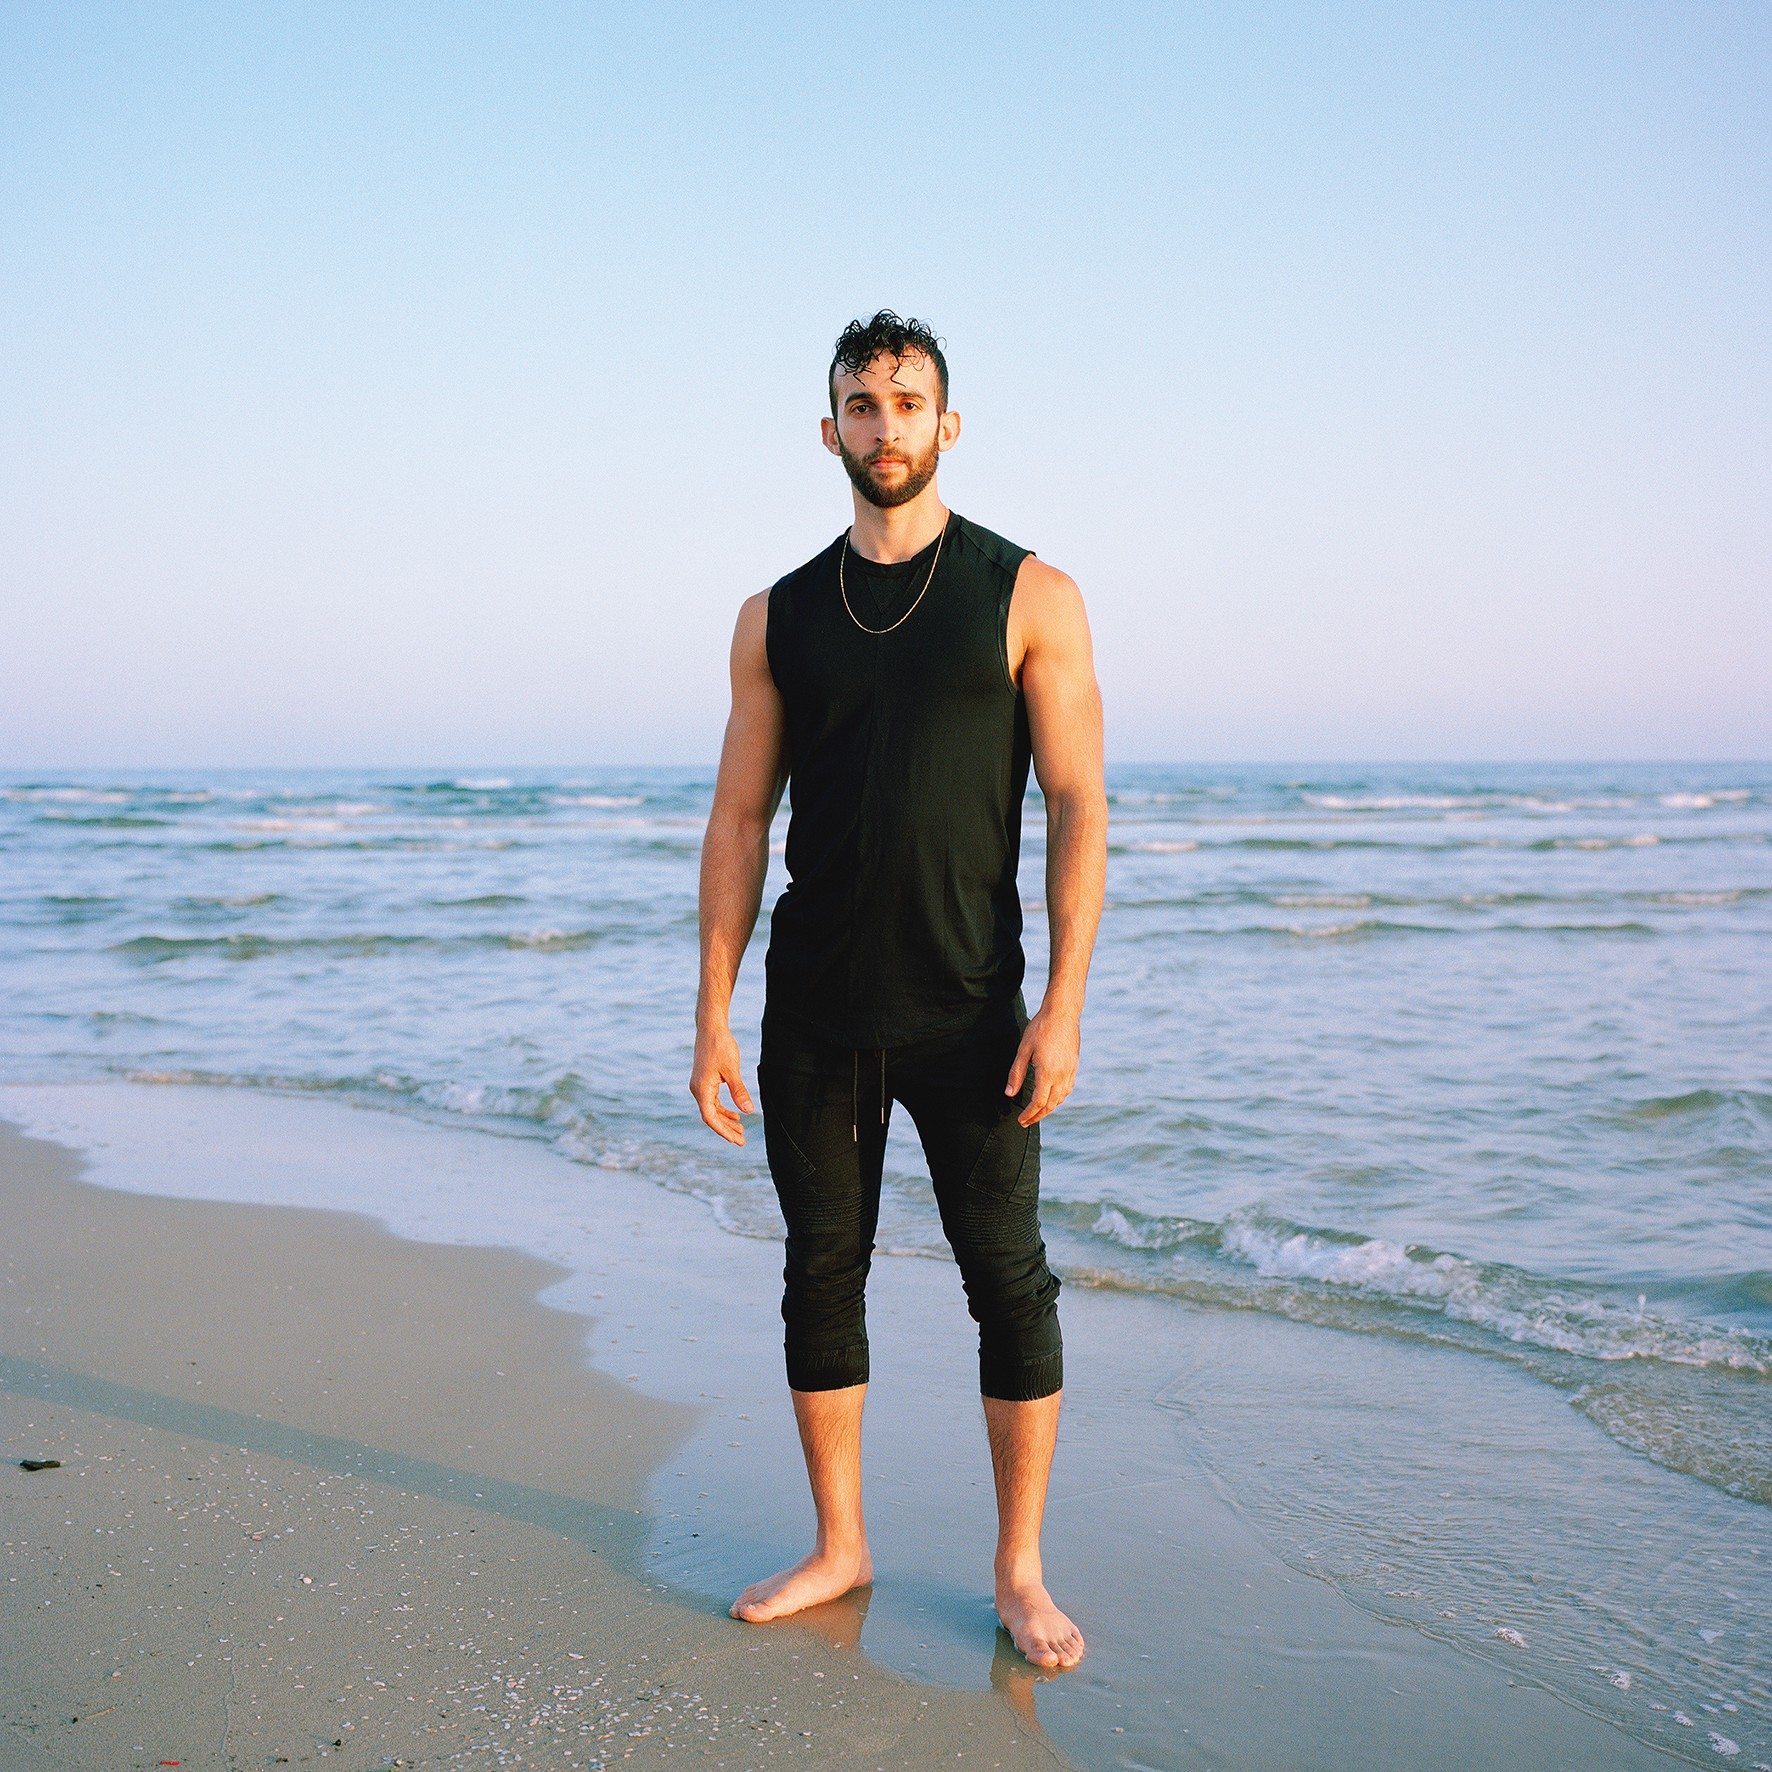 Pascal Haas: Tel—Avivis the south west collective of photography topless man stood on beach